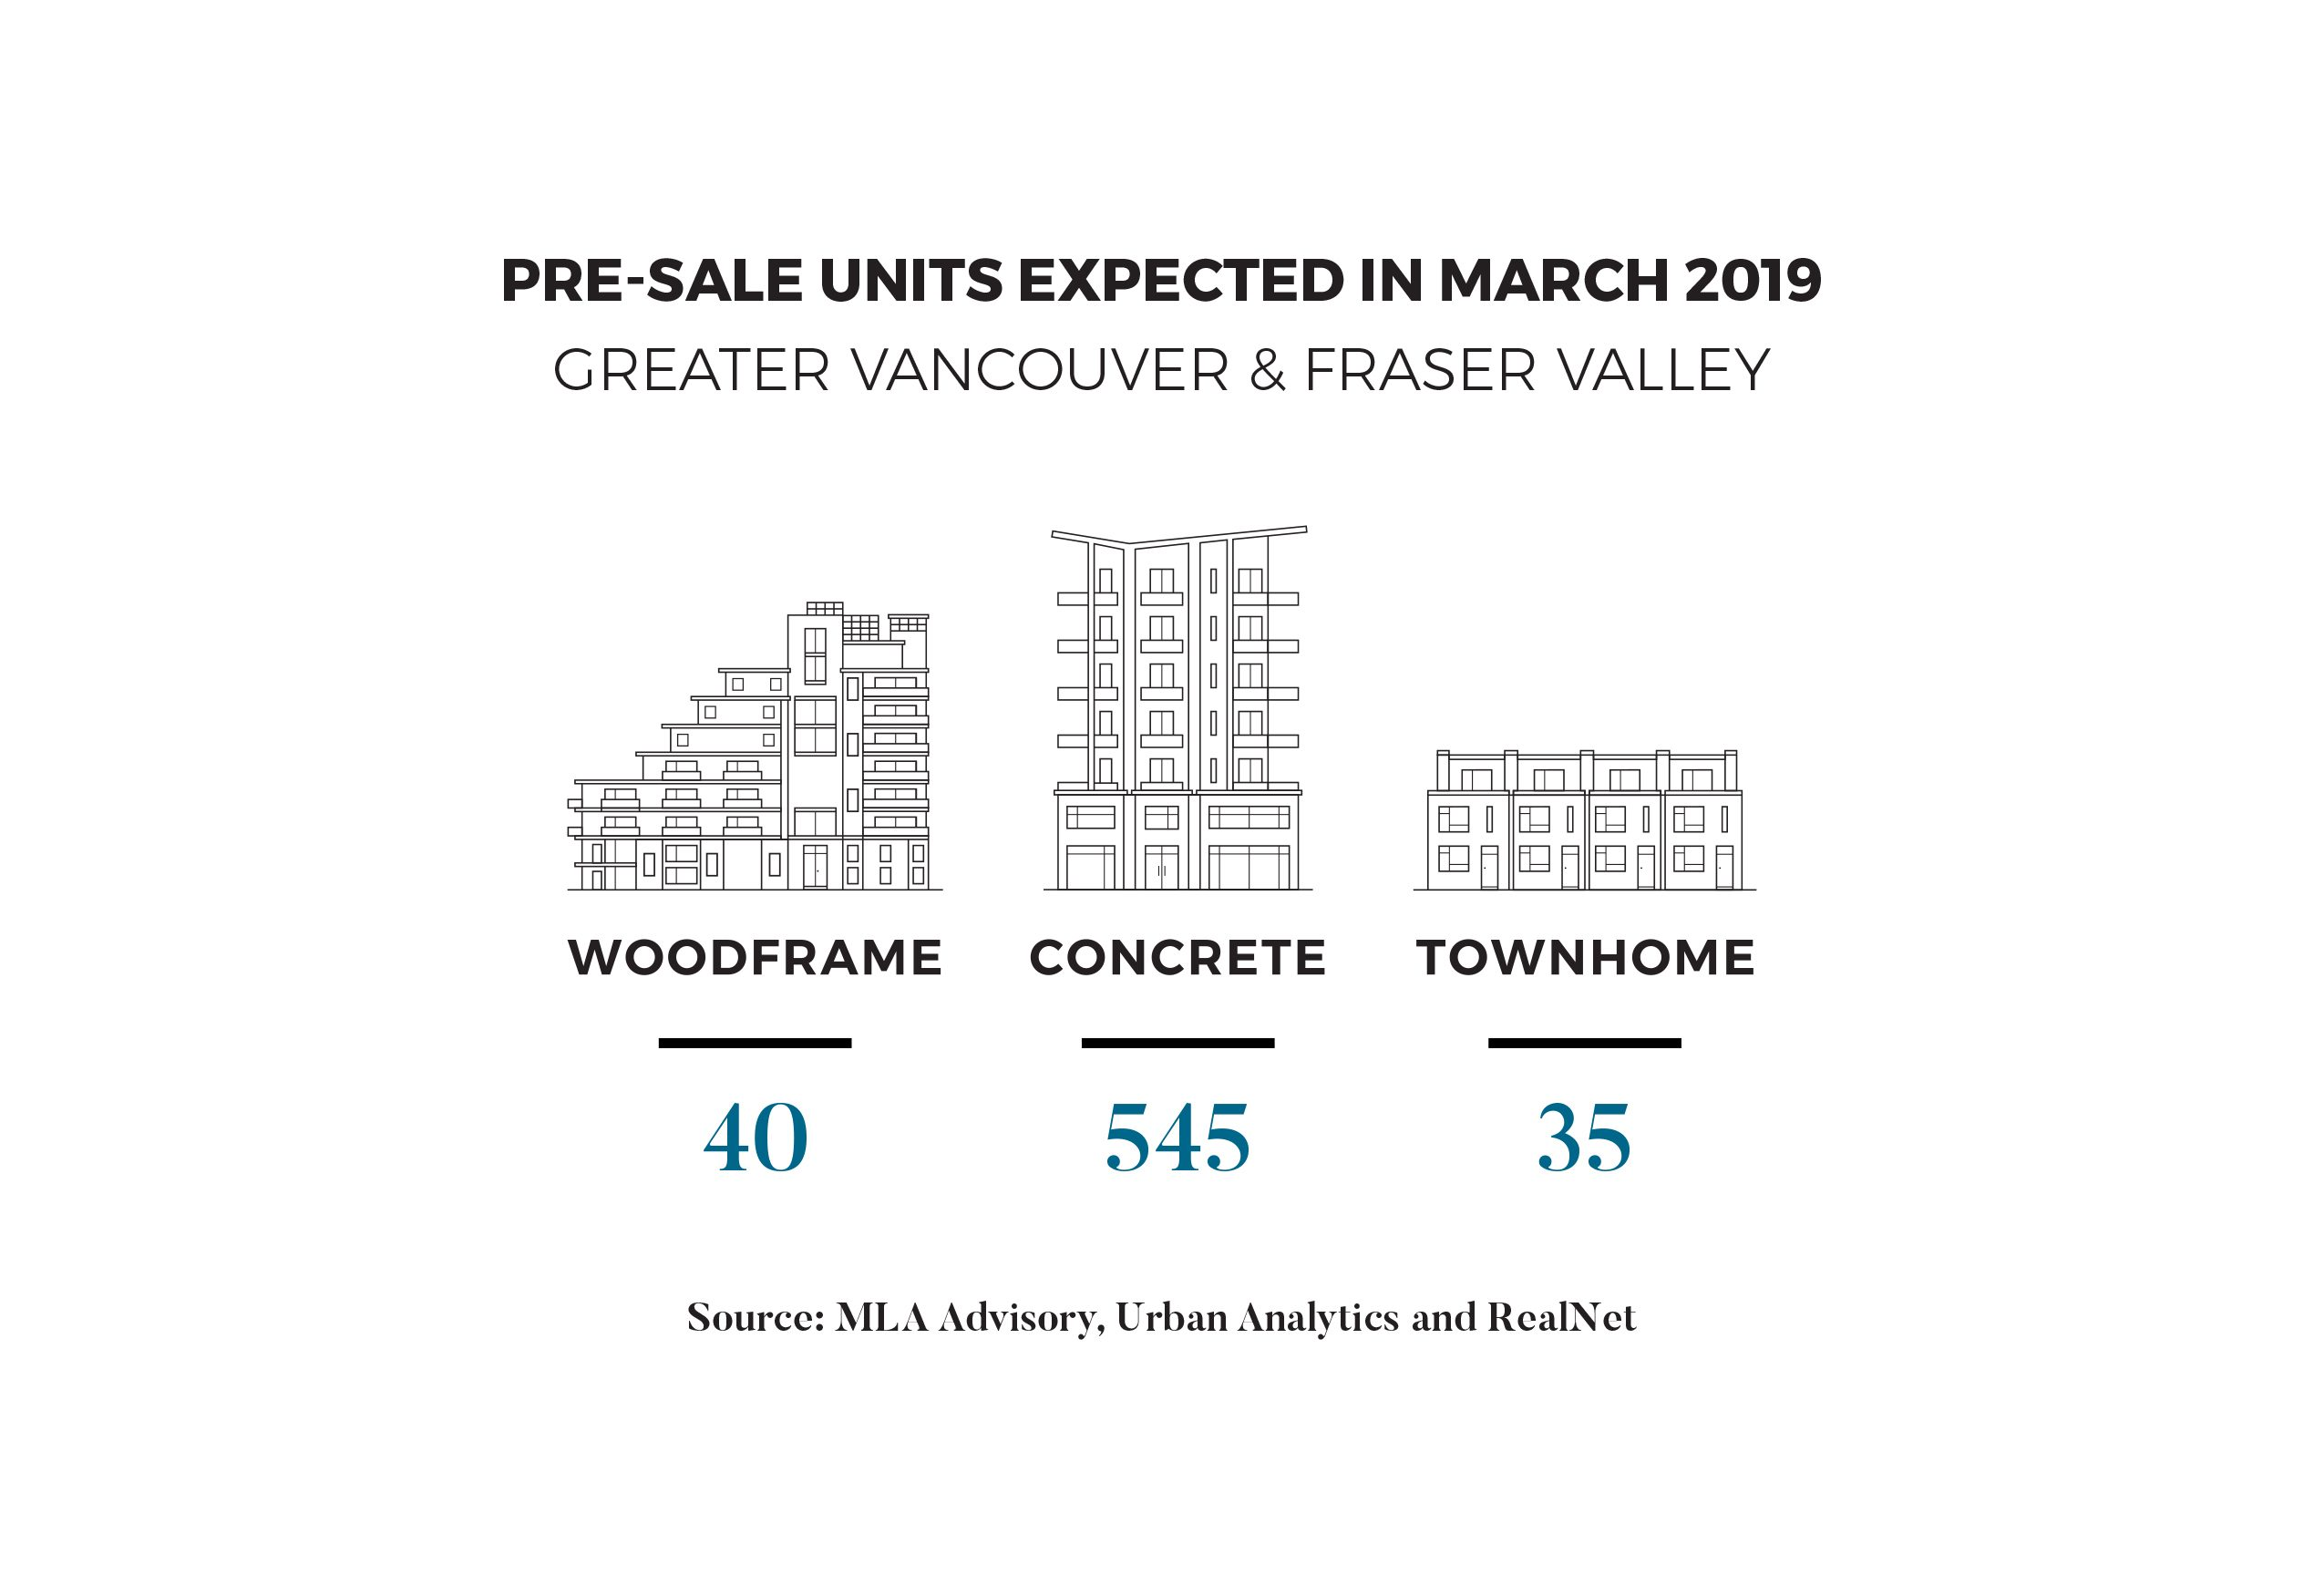 March 2019 Pre-Sale Units Forecast